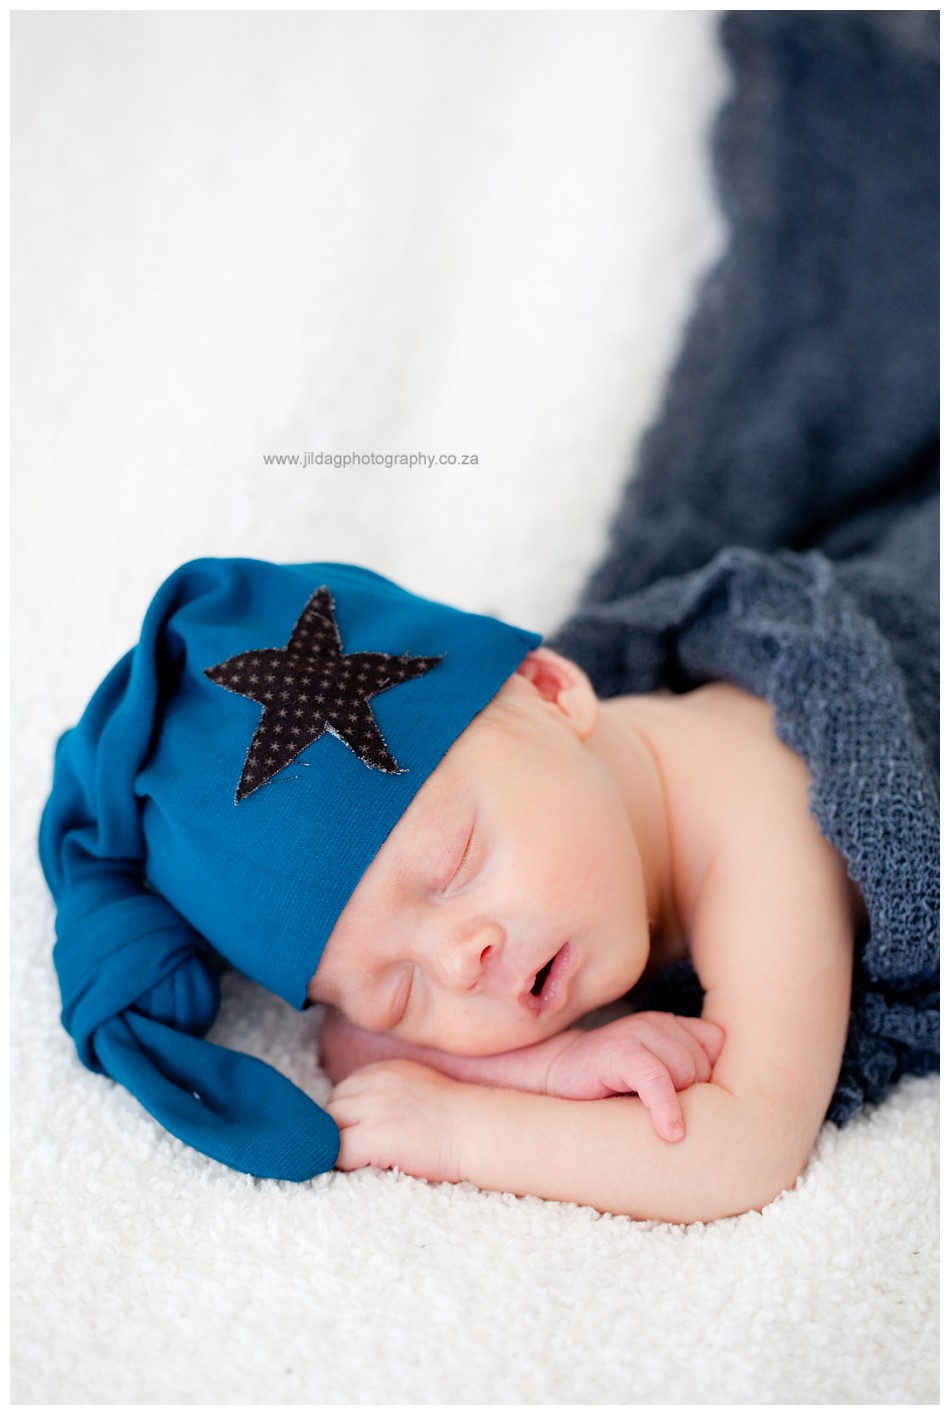 Newborn photography - Jilda G - Durbanville (14)